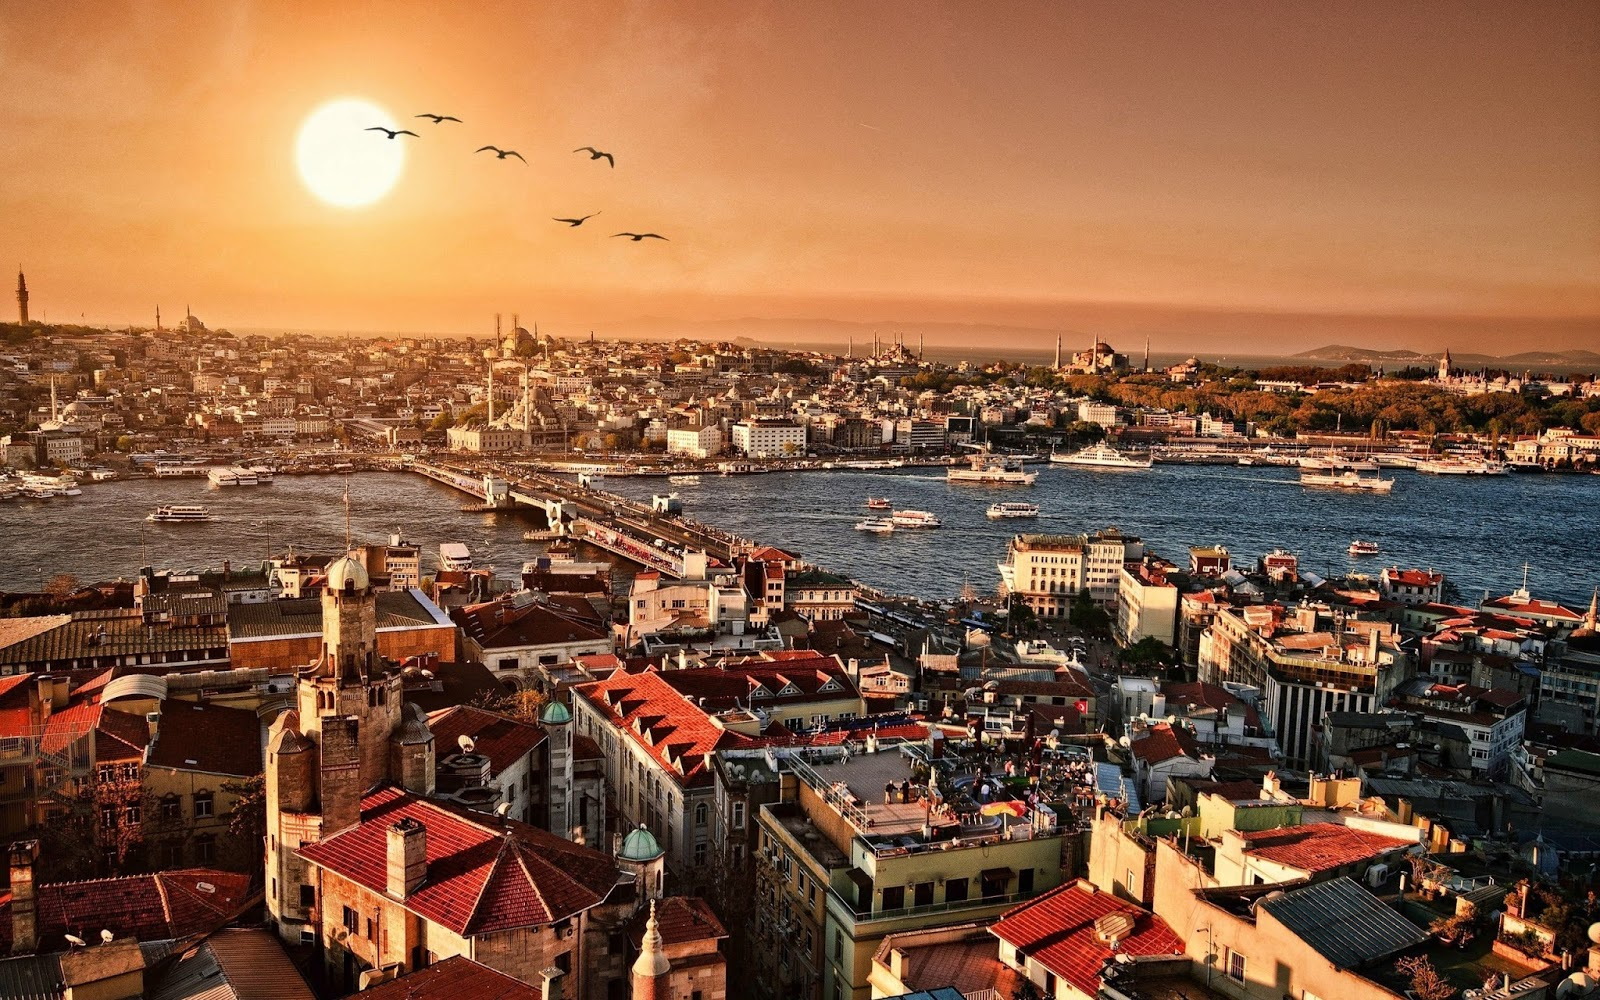 Magnificent view over the city of Istambul, Turkiey